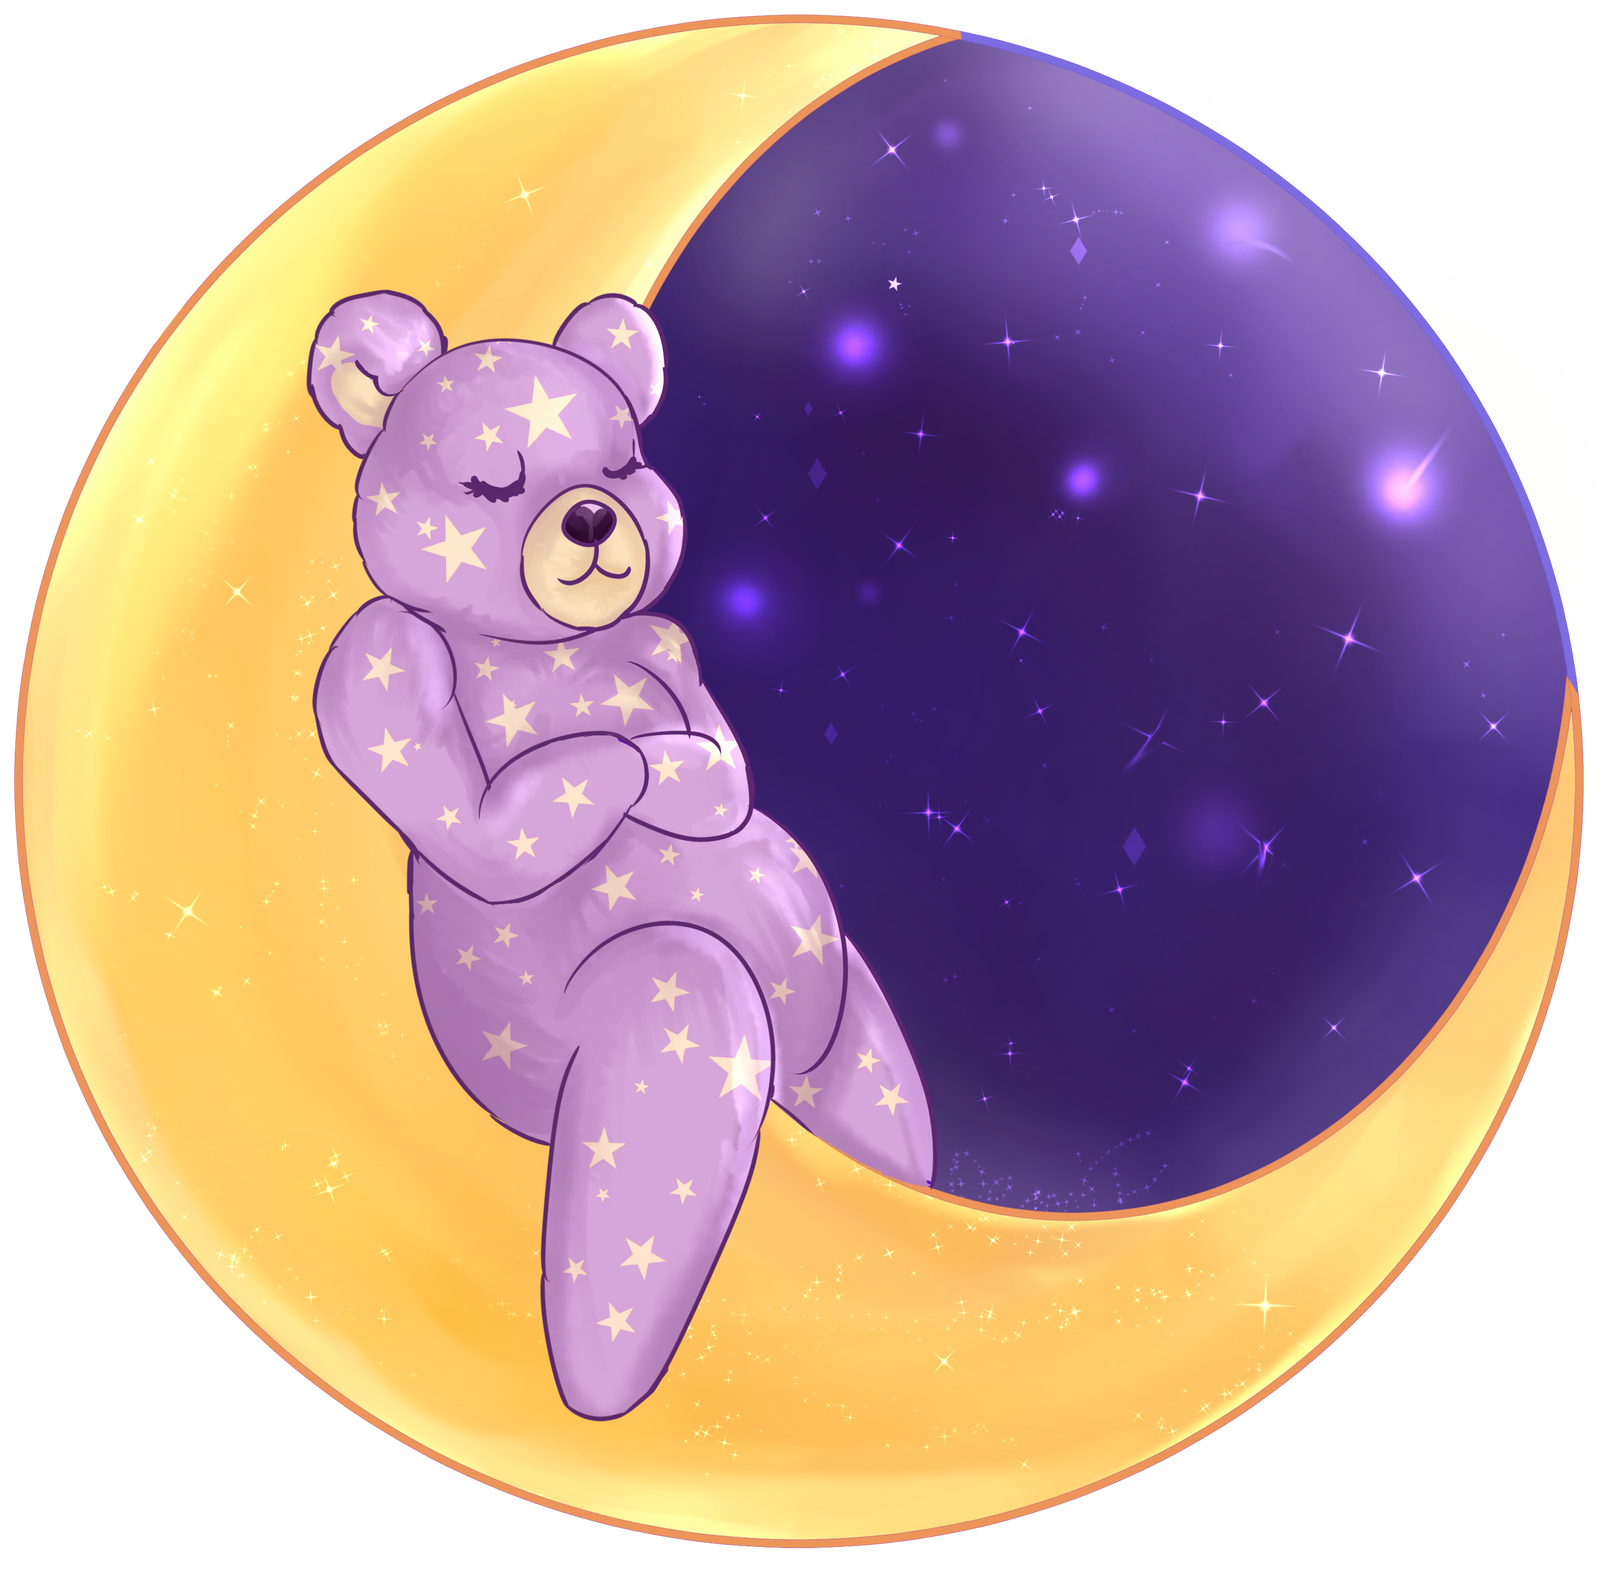 Cosmic Bear by Demi